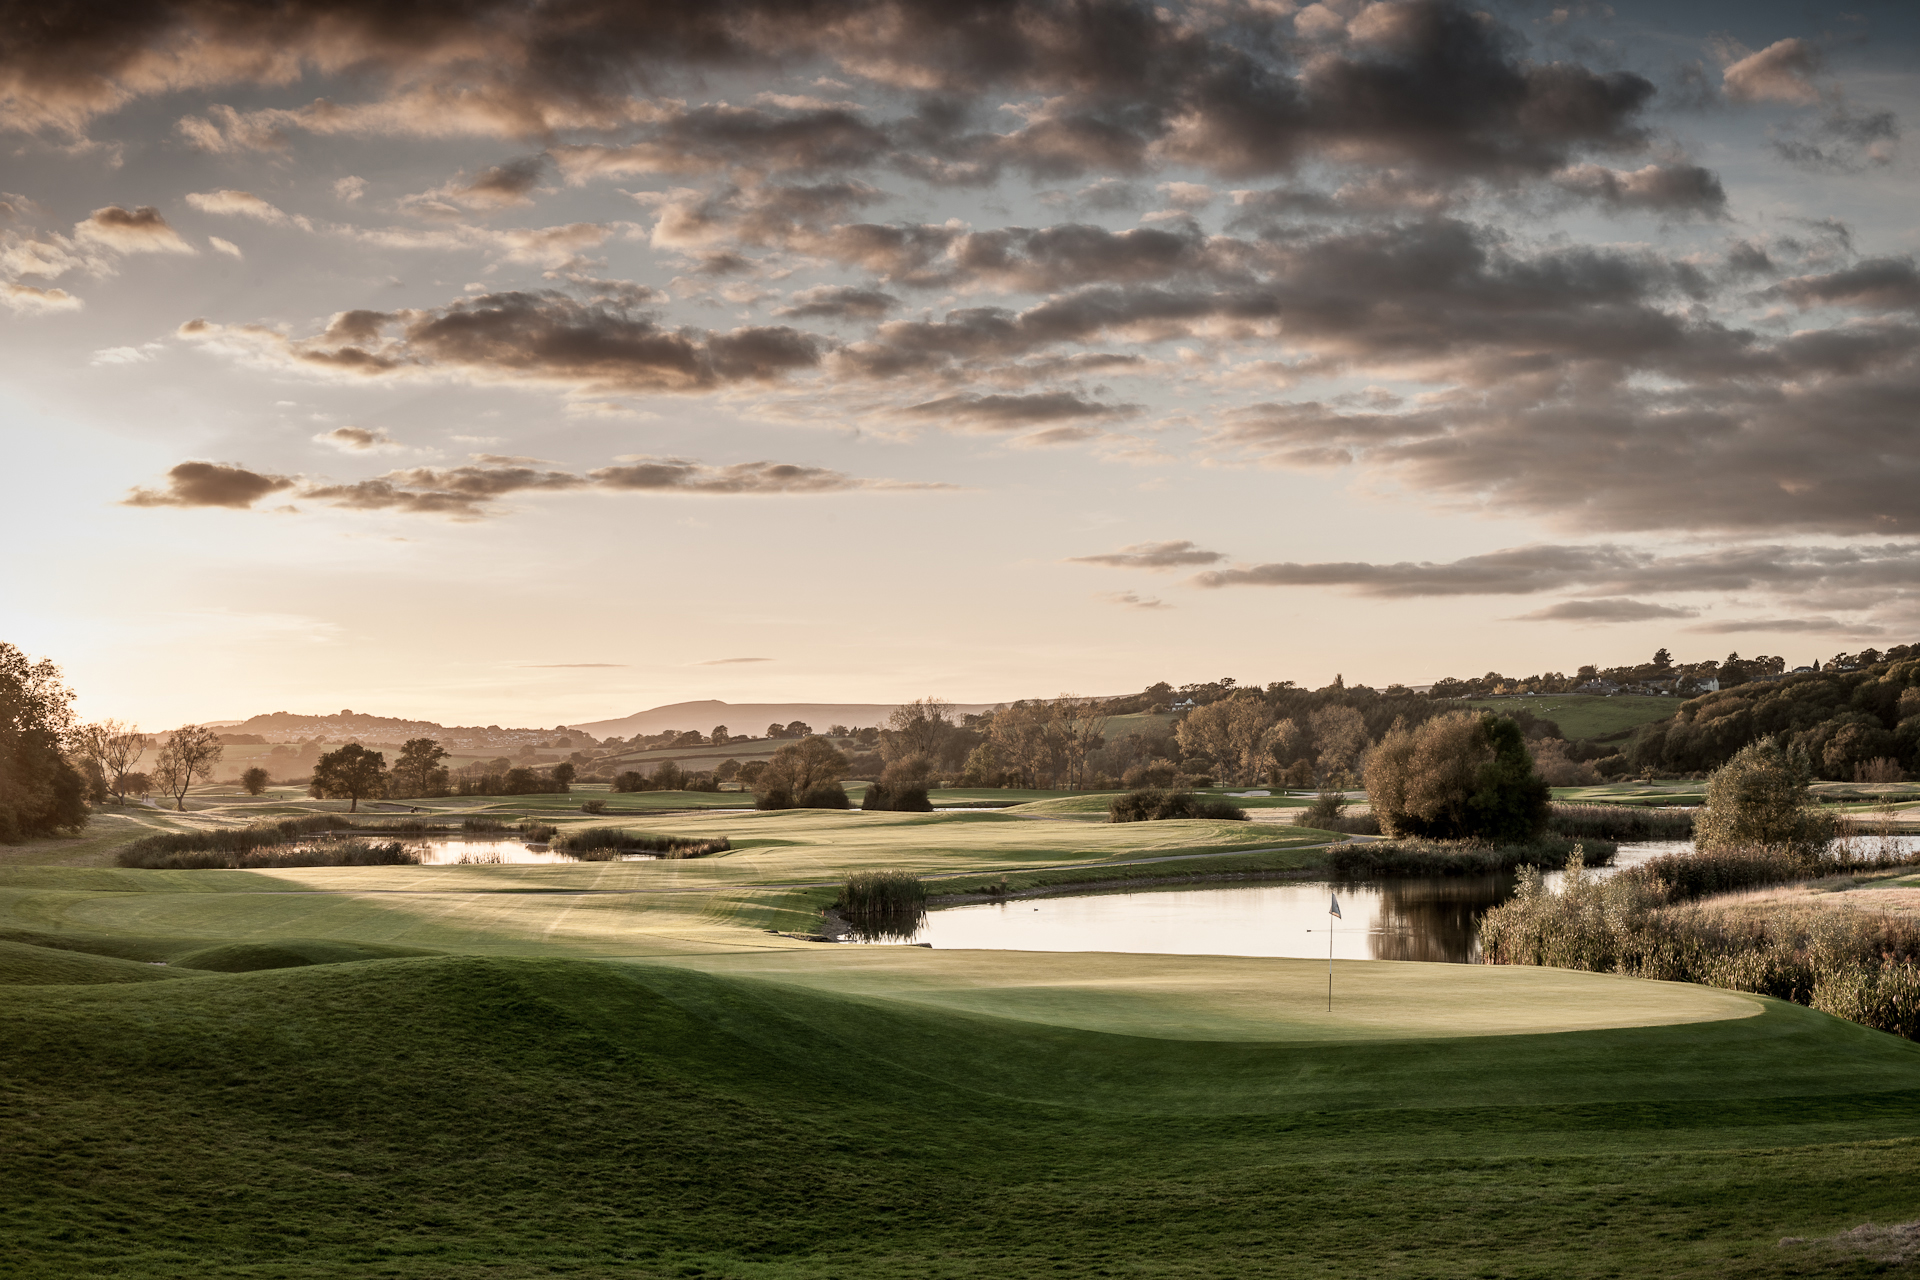 Ryder Cup Golf Course , Celtic Manor, wales, UK